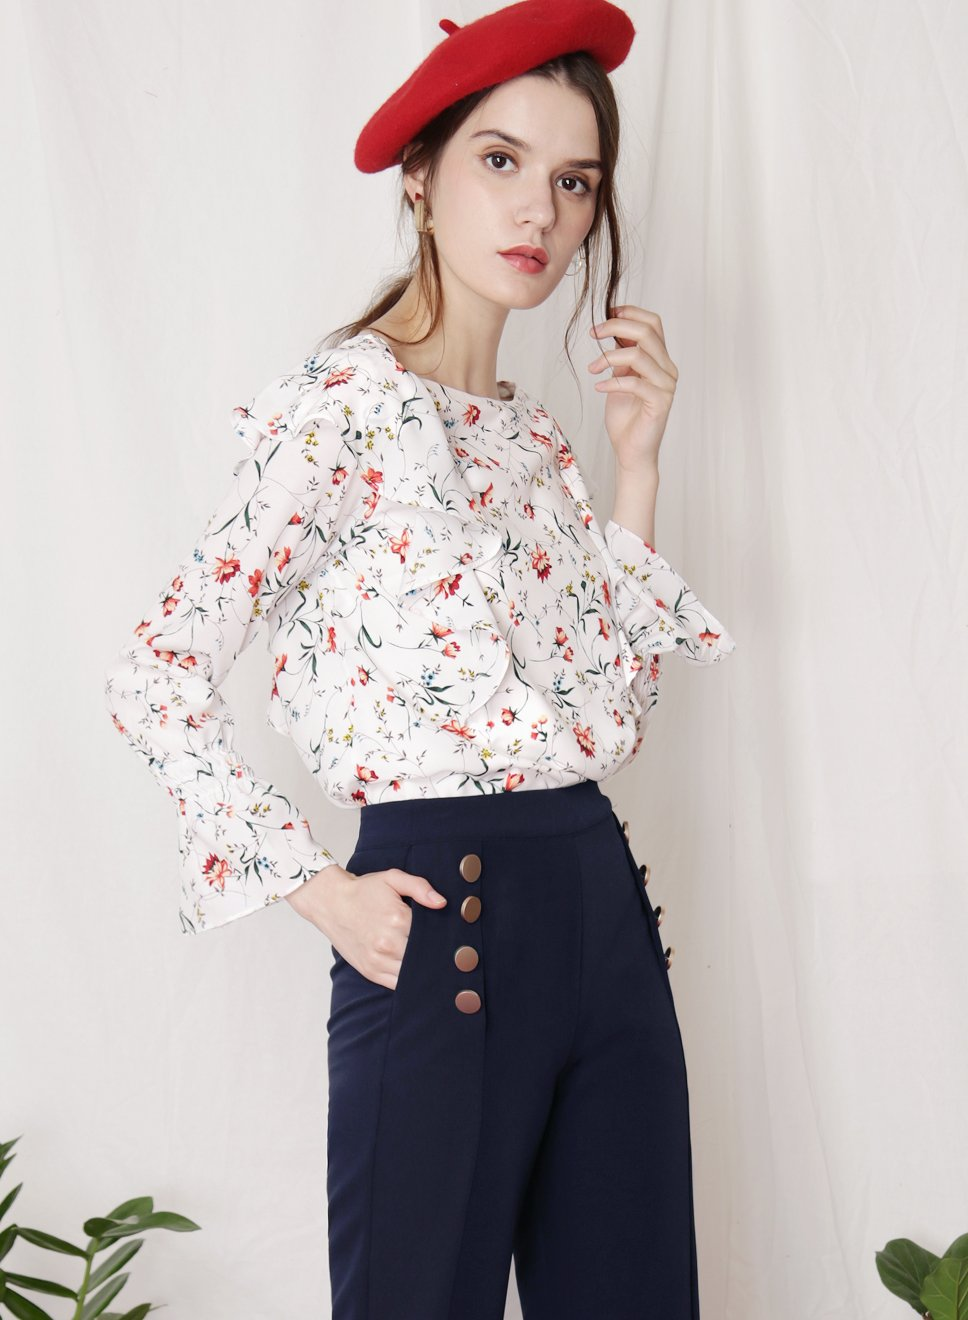 INDULGE Floral Ruffled Top (White) at $ 34.50 only sold at And Well Dressed Online Fashion Store Singapore